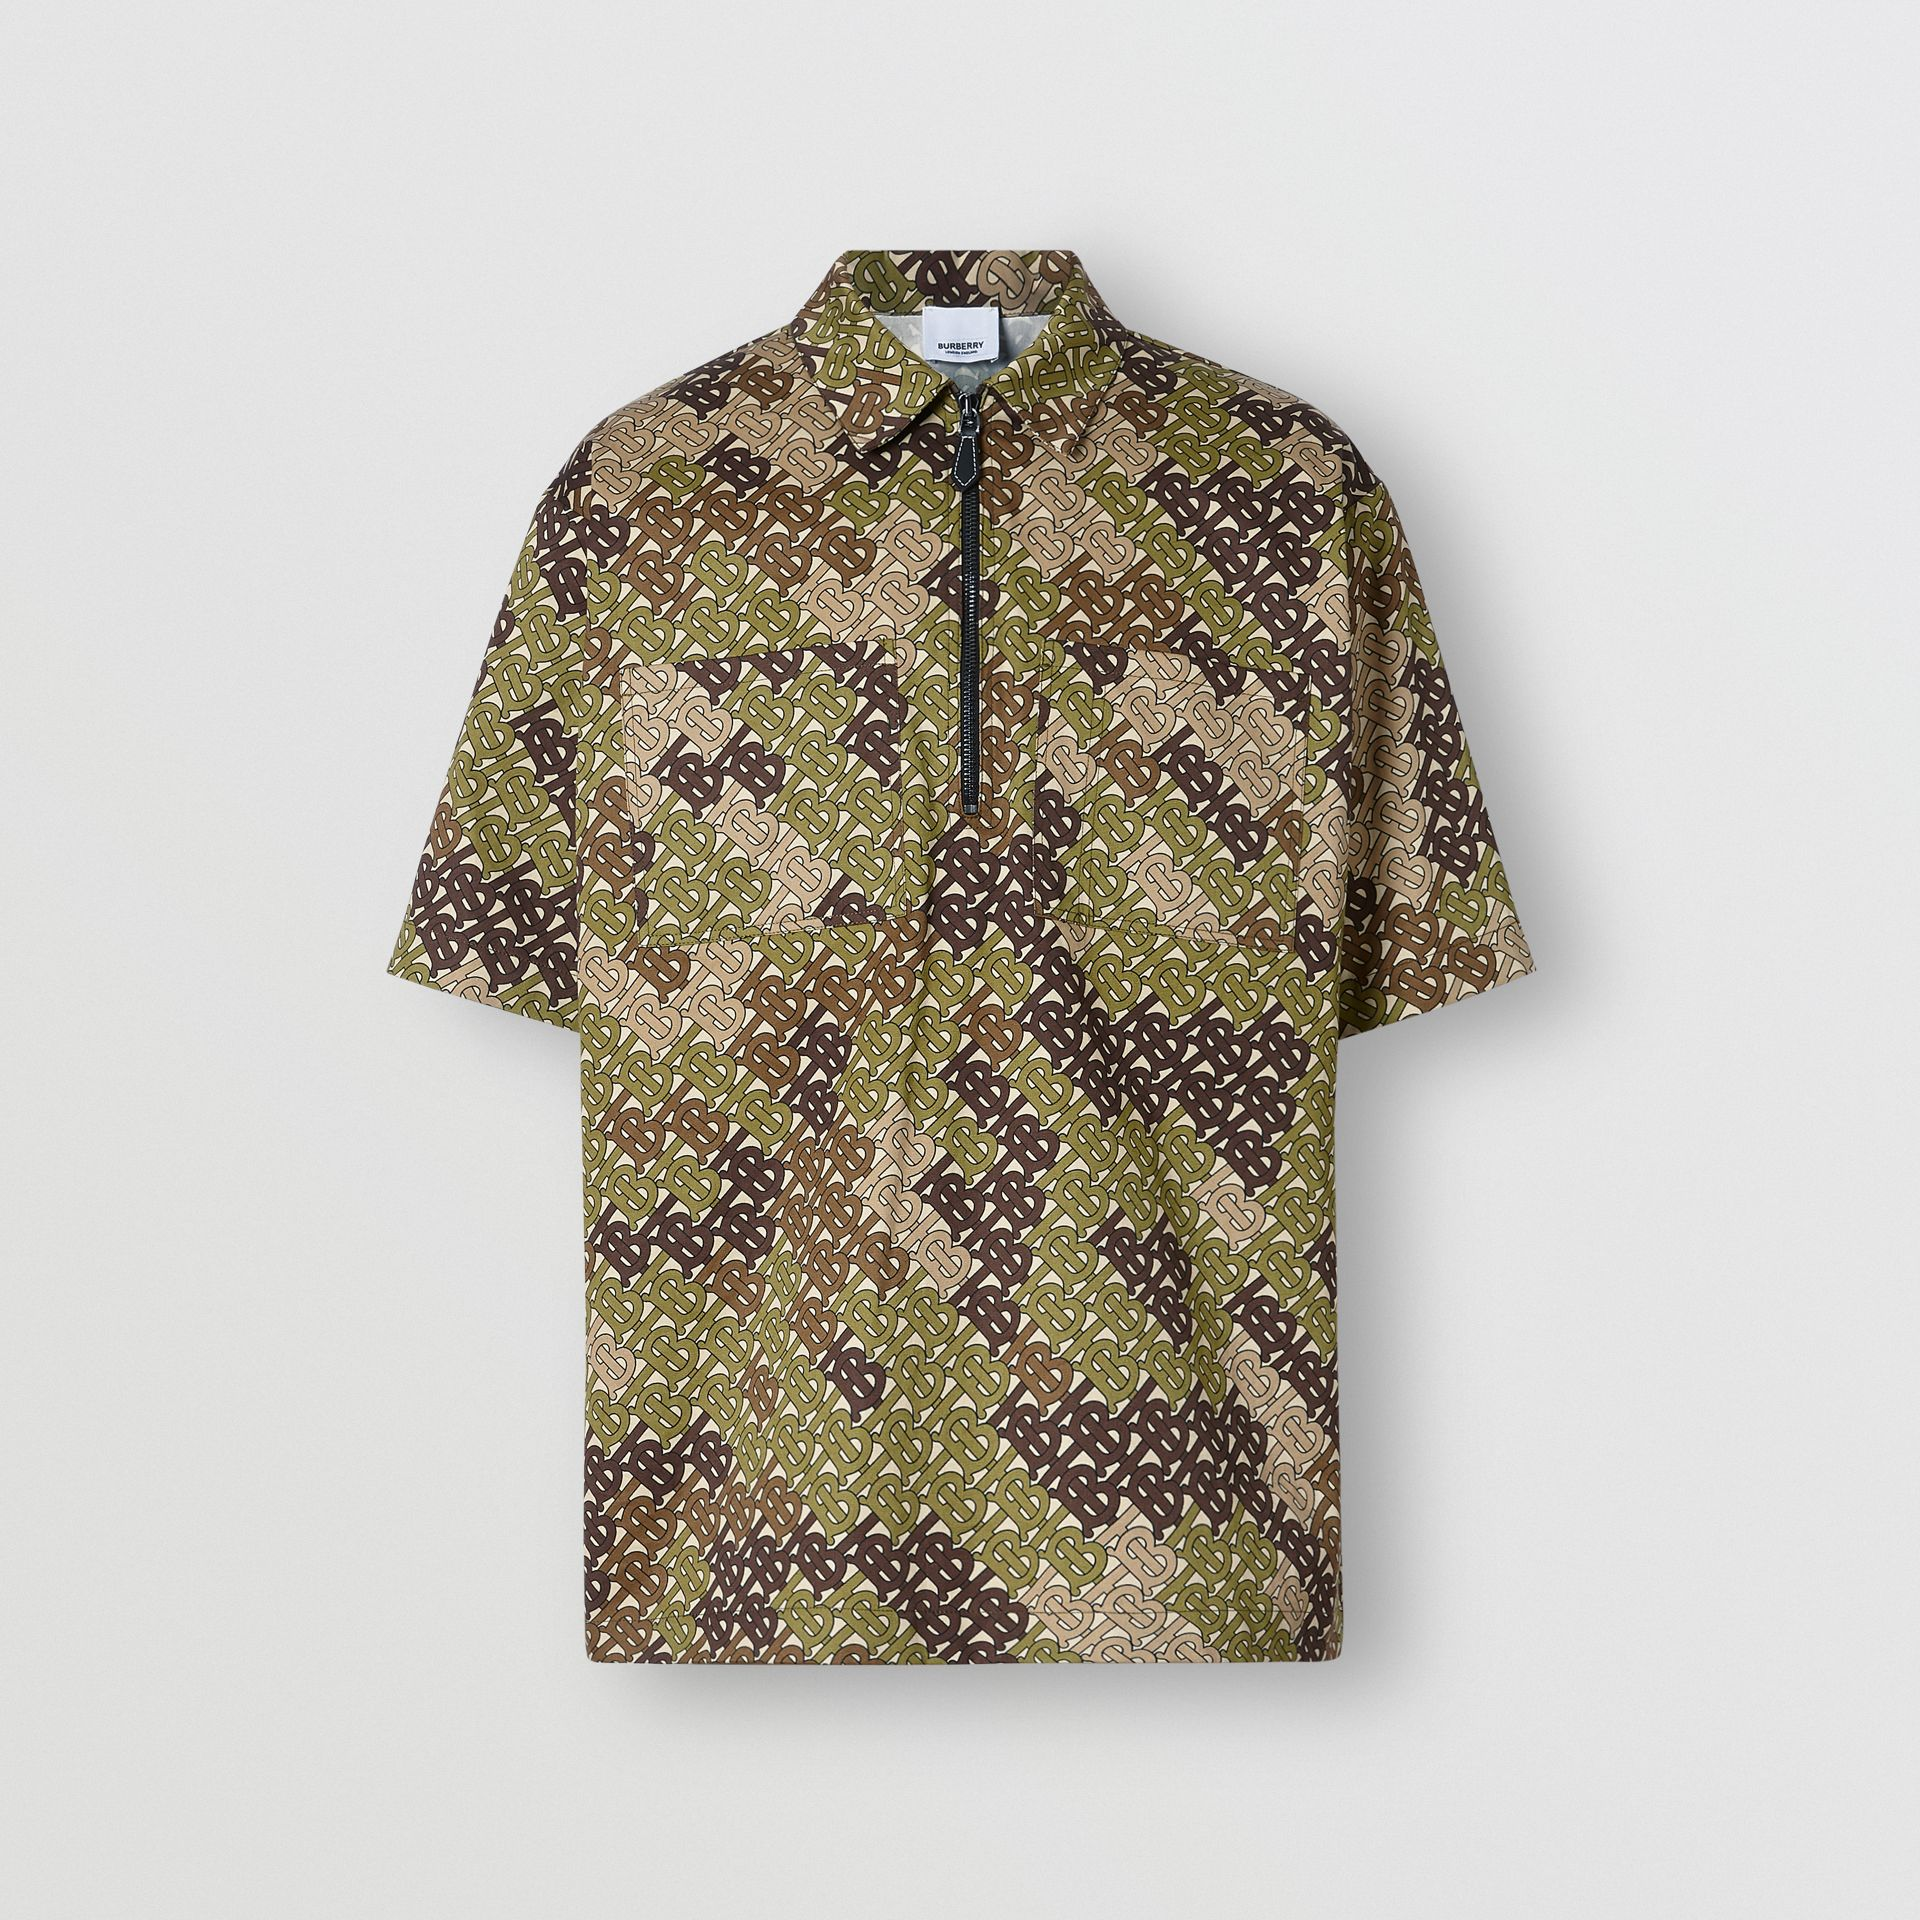 Short-sleeve Monogram Print Cotton Shirt in Khaki Green - Men | Burberry - gallery image 3